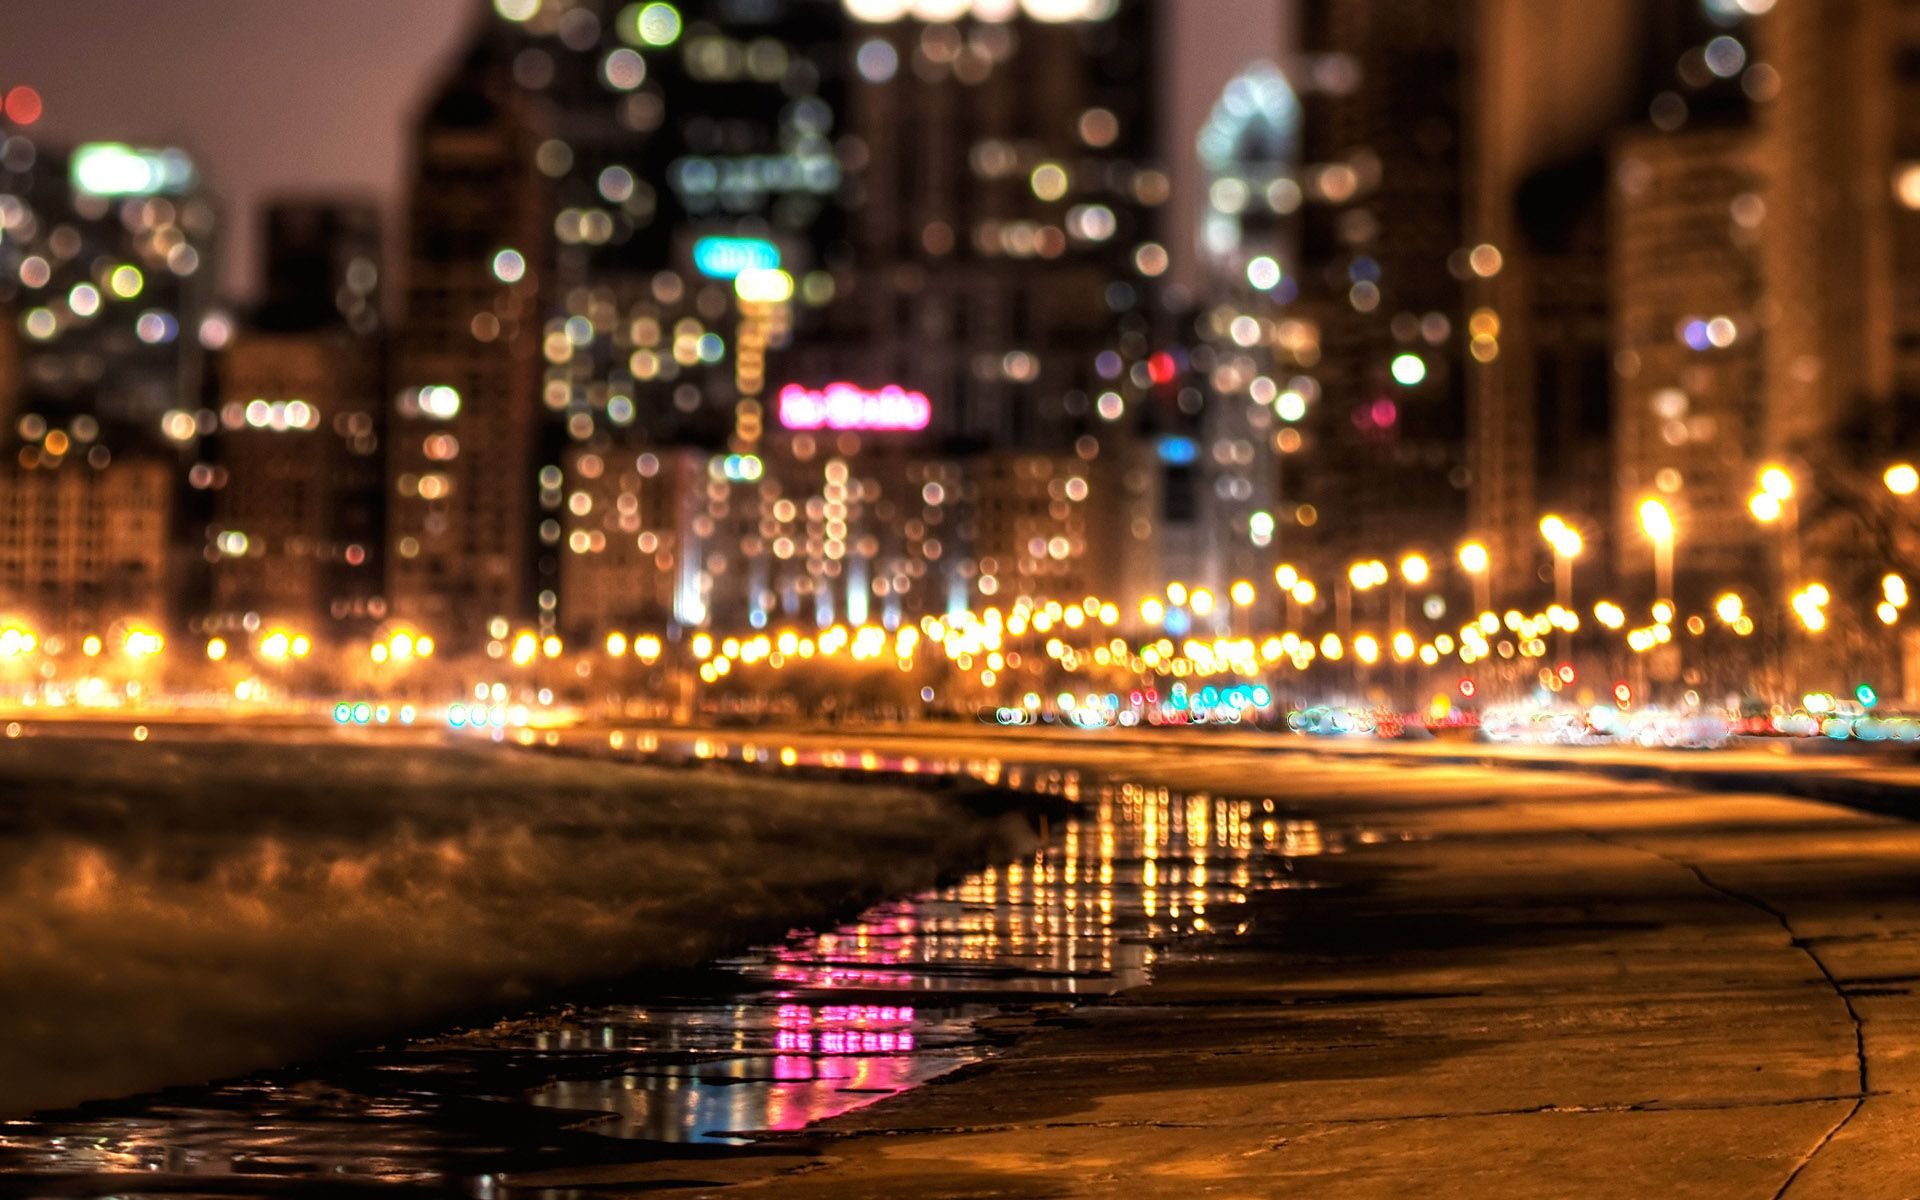 Photography Wallpaper (Urban Photography – City Lights Edition ... for City Lights At Night Wallpaper  599kxo